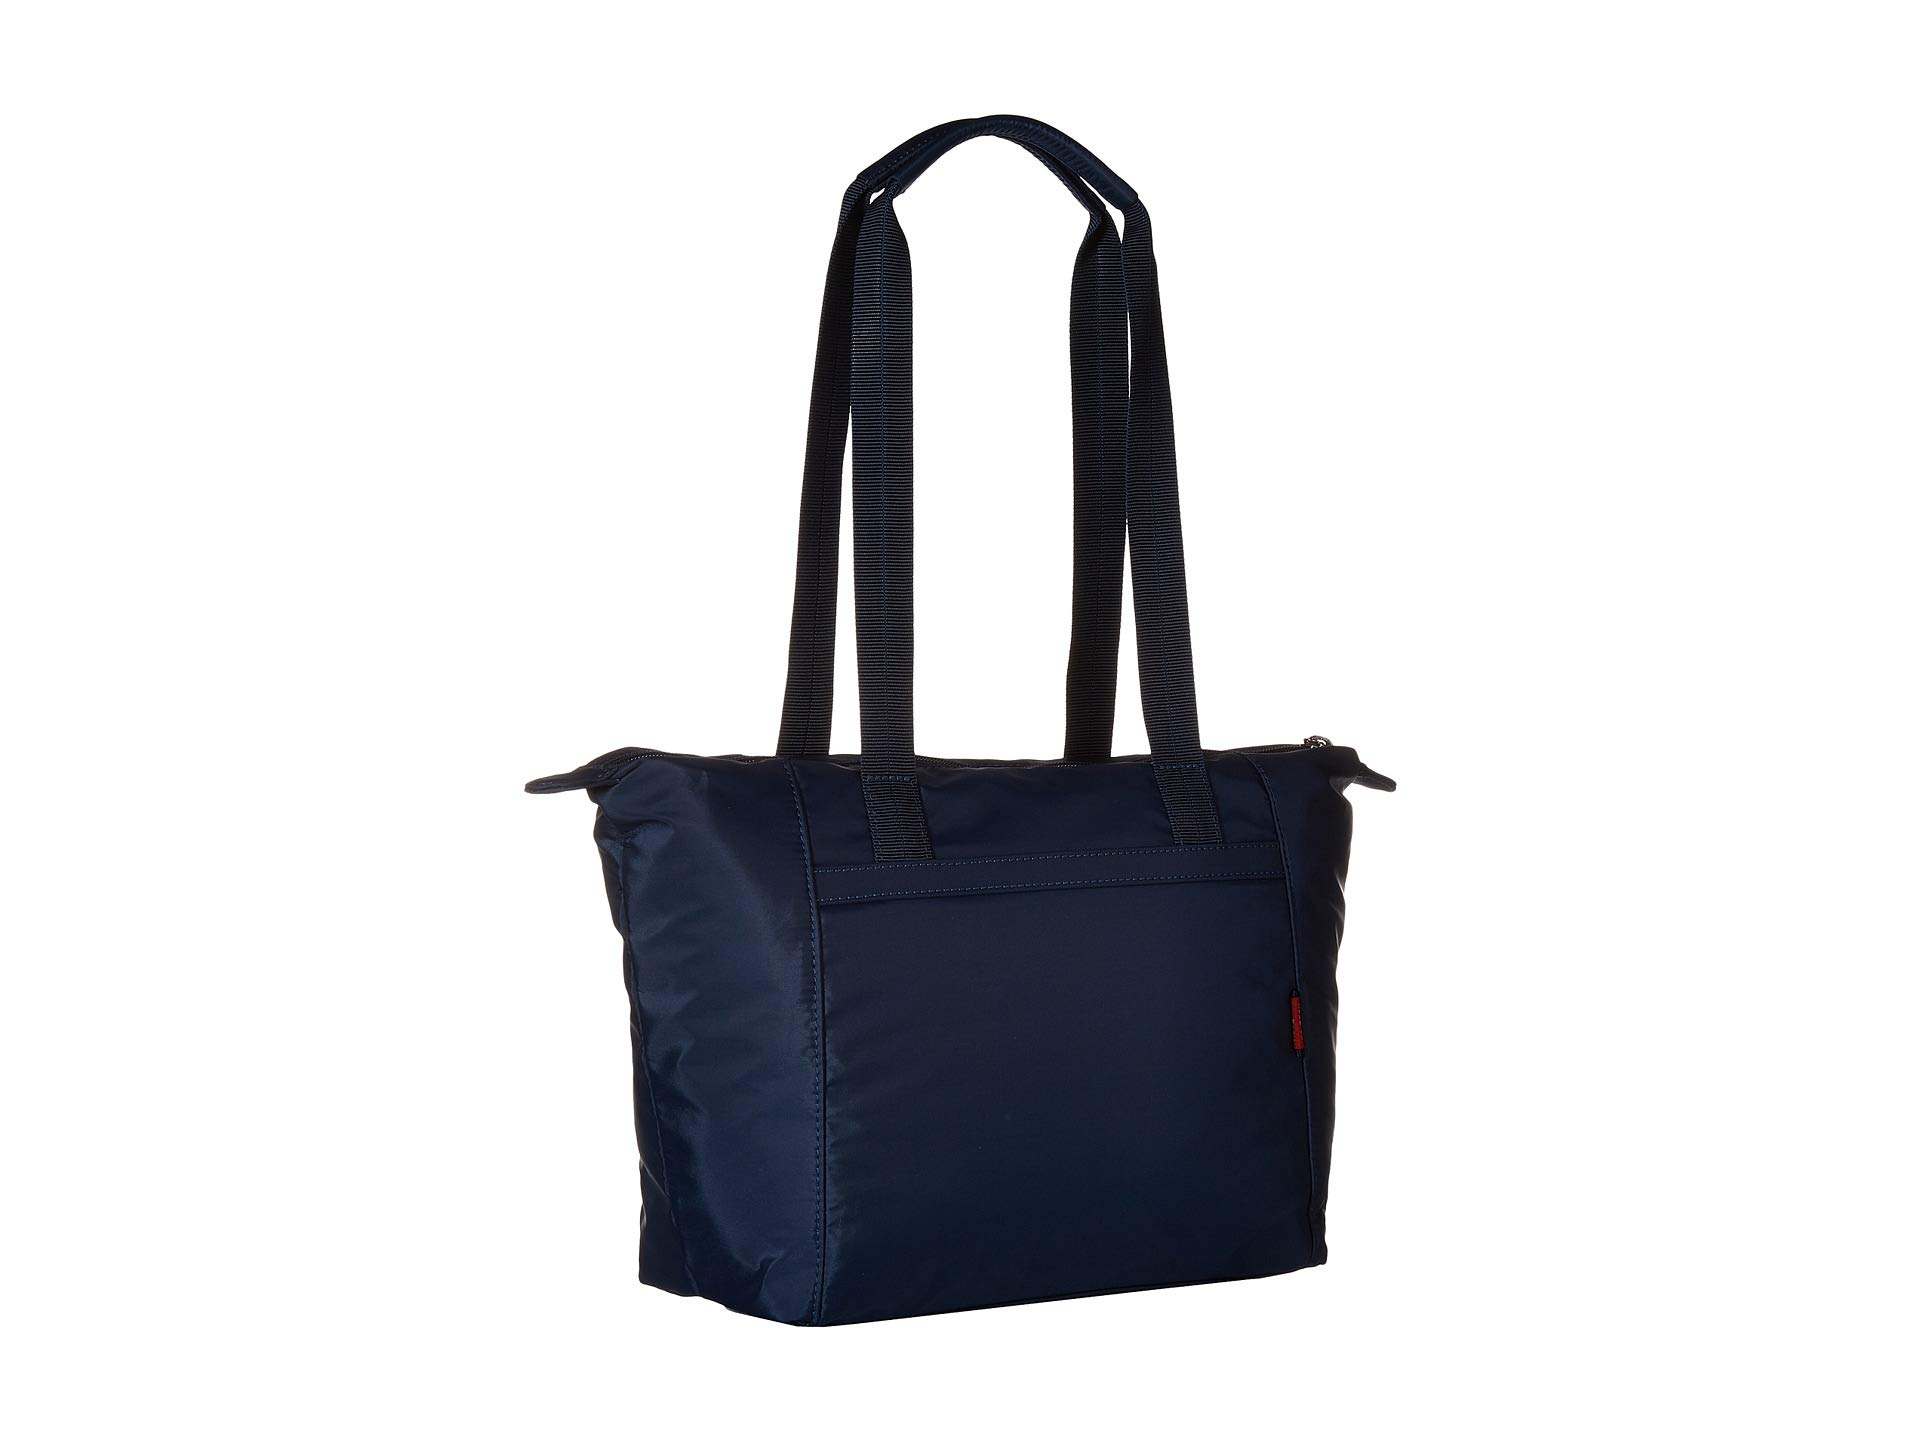 Hedgren Dress Medium Rfid Blue Megan Tote rAIqnWrS